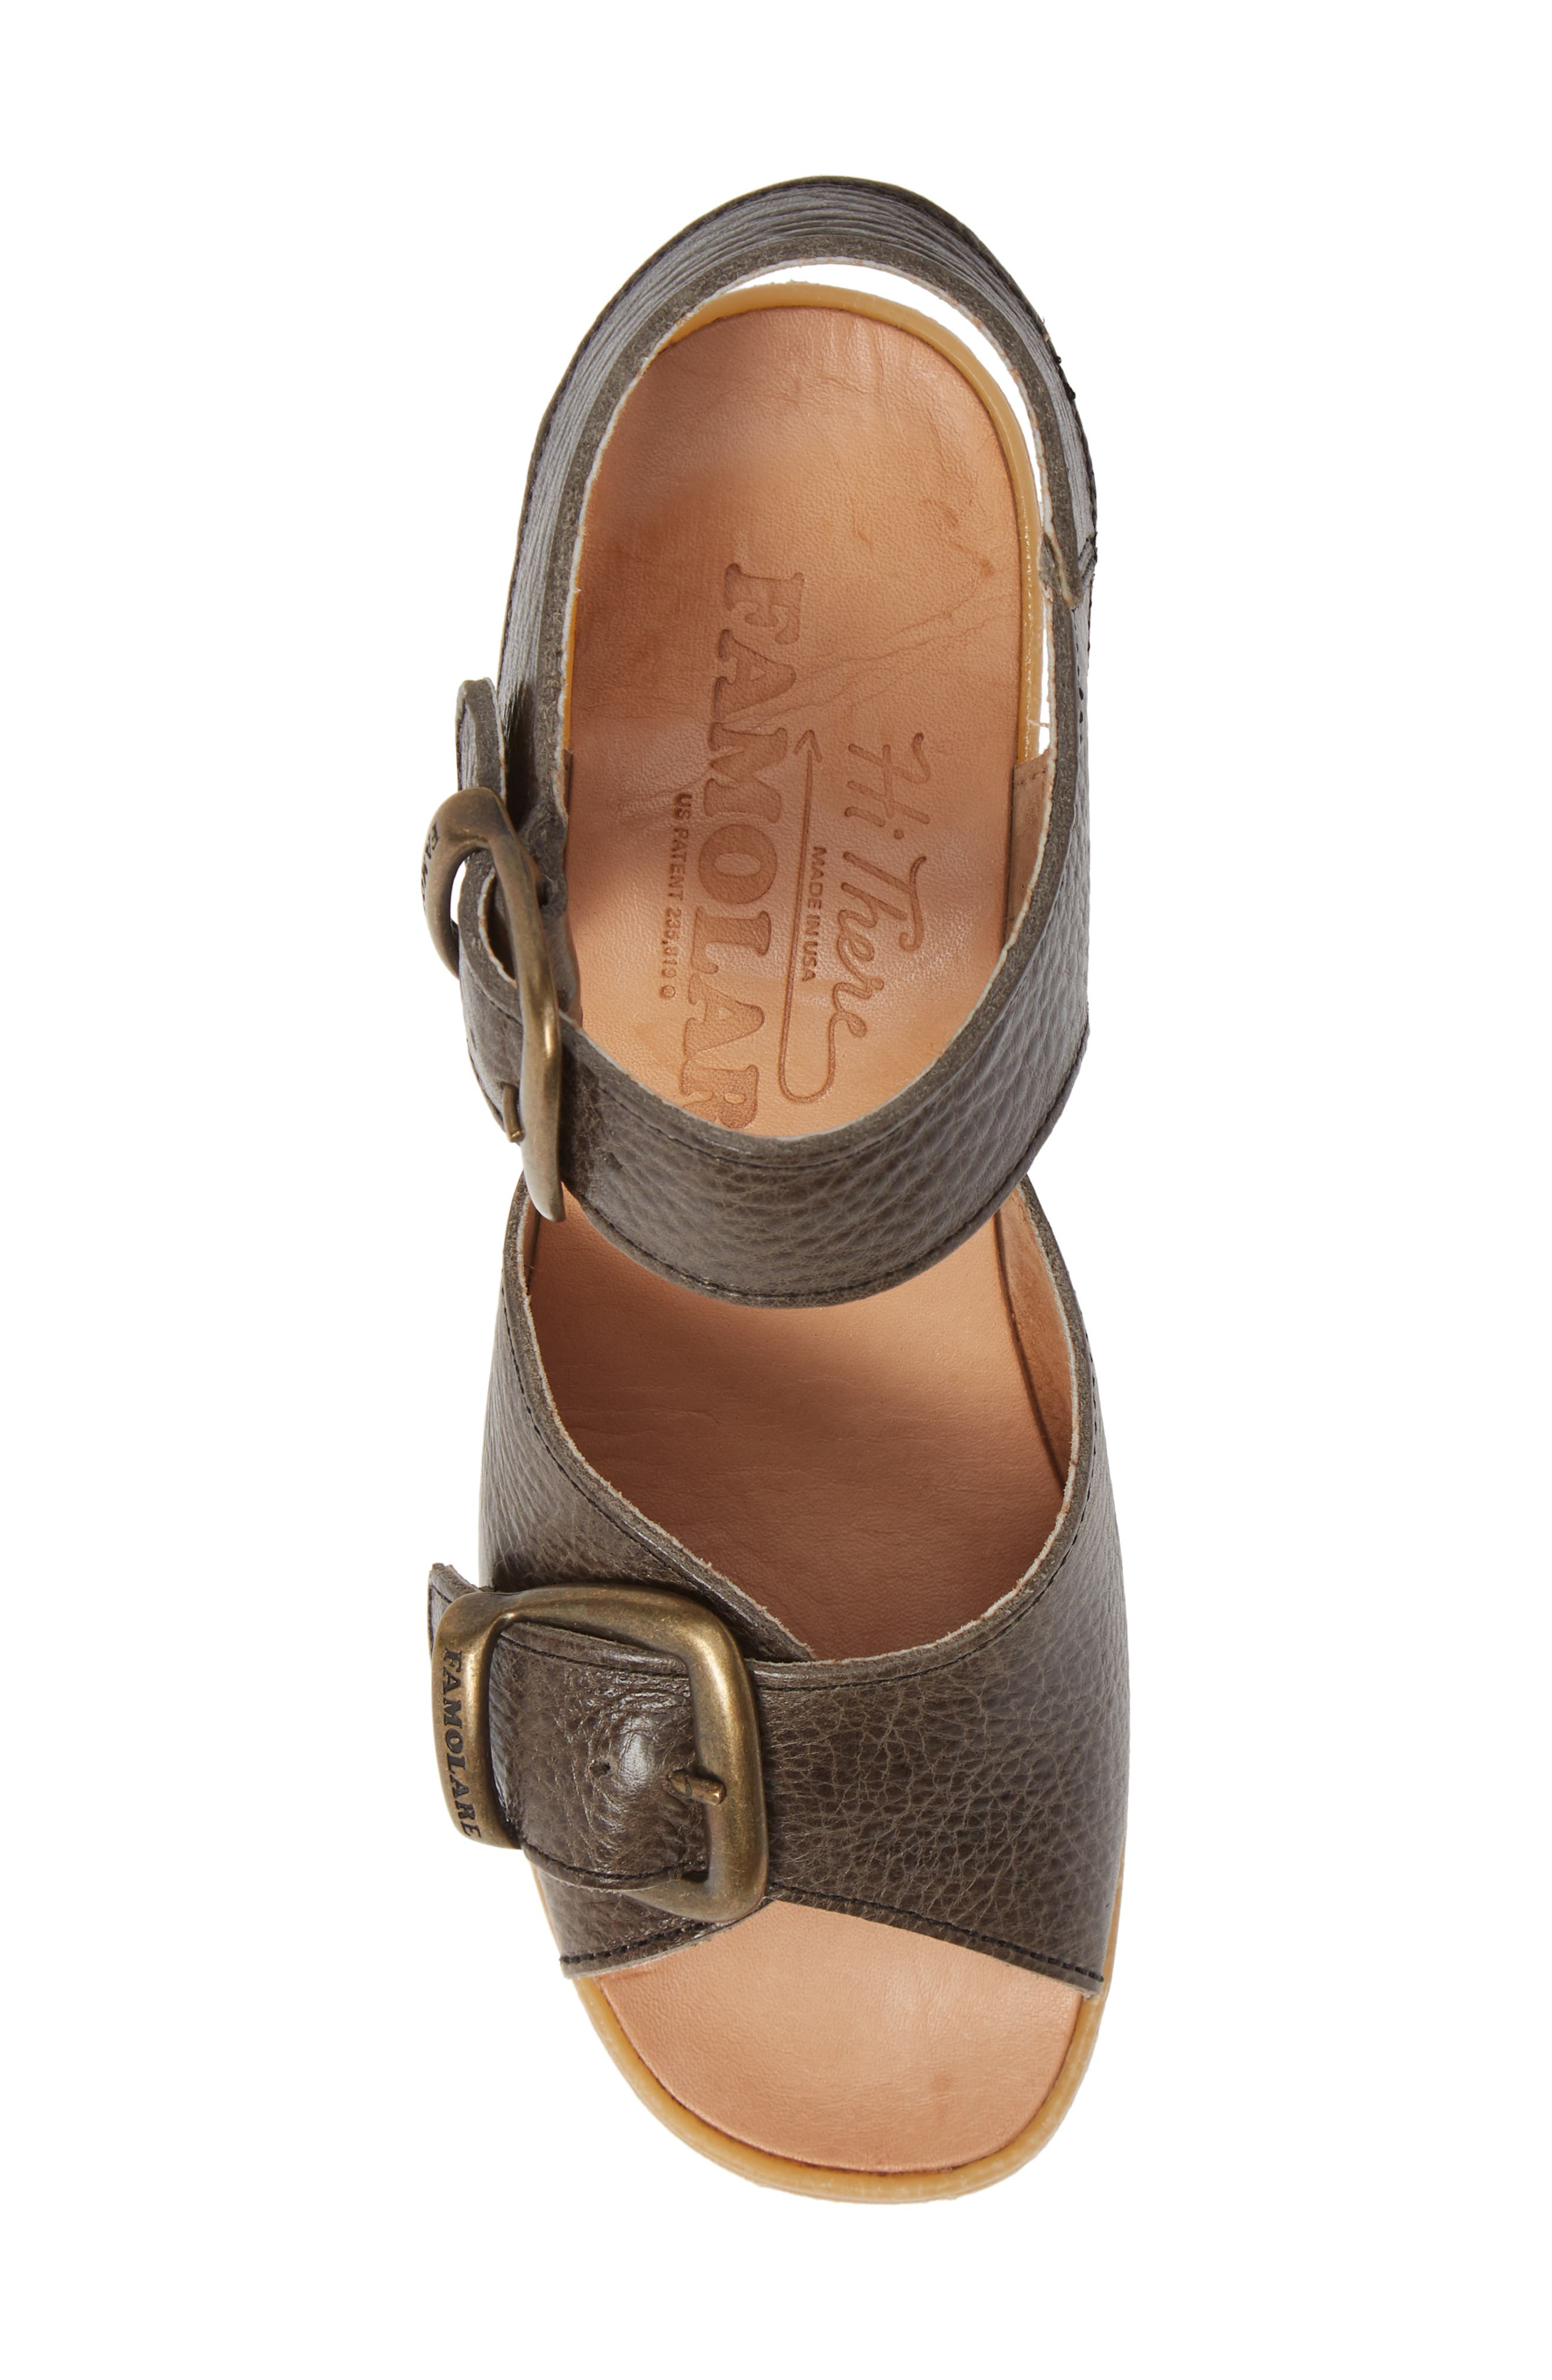 Double Vision Wedge Sandal,                             Alternate thumbnail 5, color,                             STEEL LEATHER